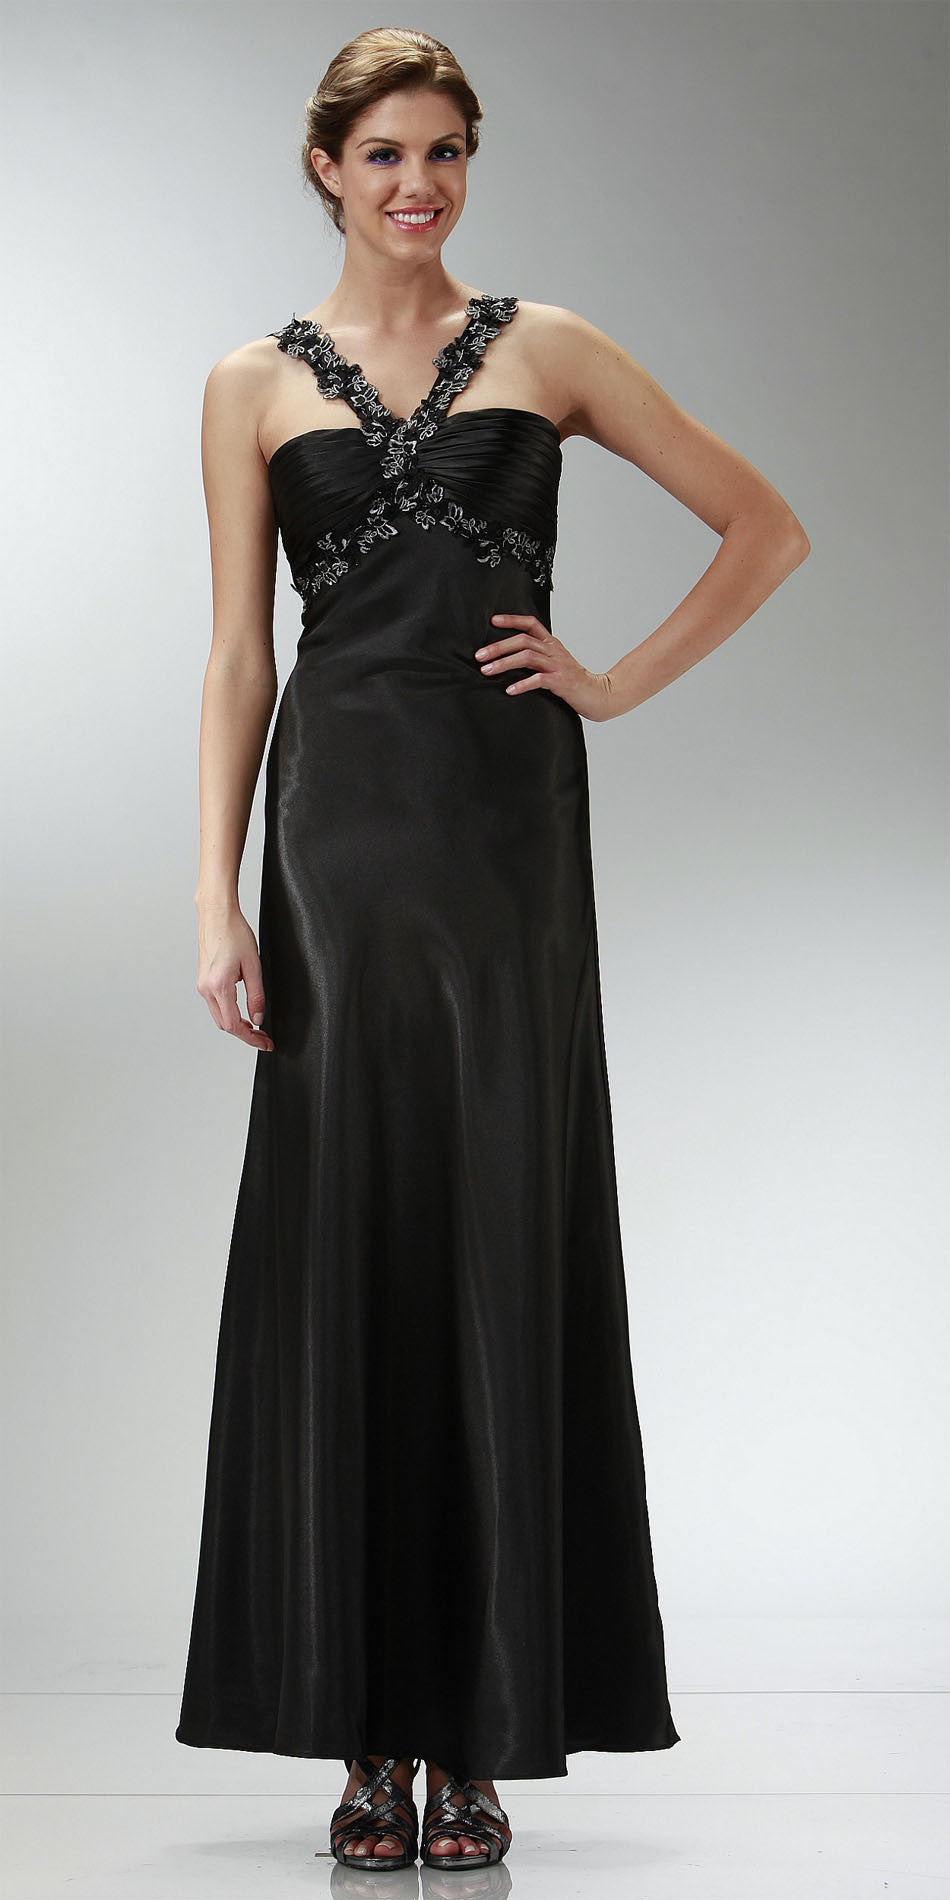 350ba0e92f4 ... ON SPECIAL LIMITED STOCK - Cheap Black Prom Dress Full Length Satin  Gown Applique Cross Straps ...